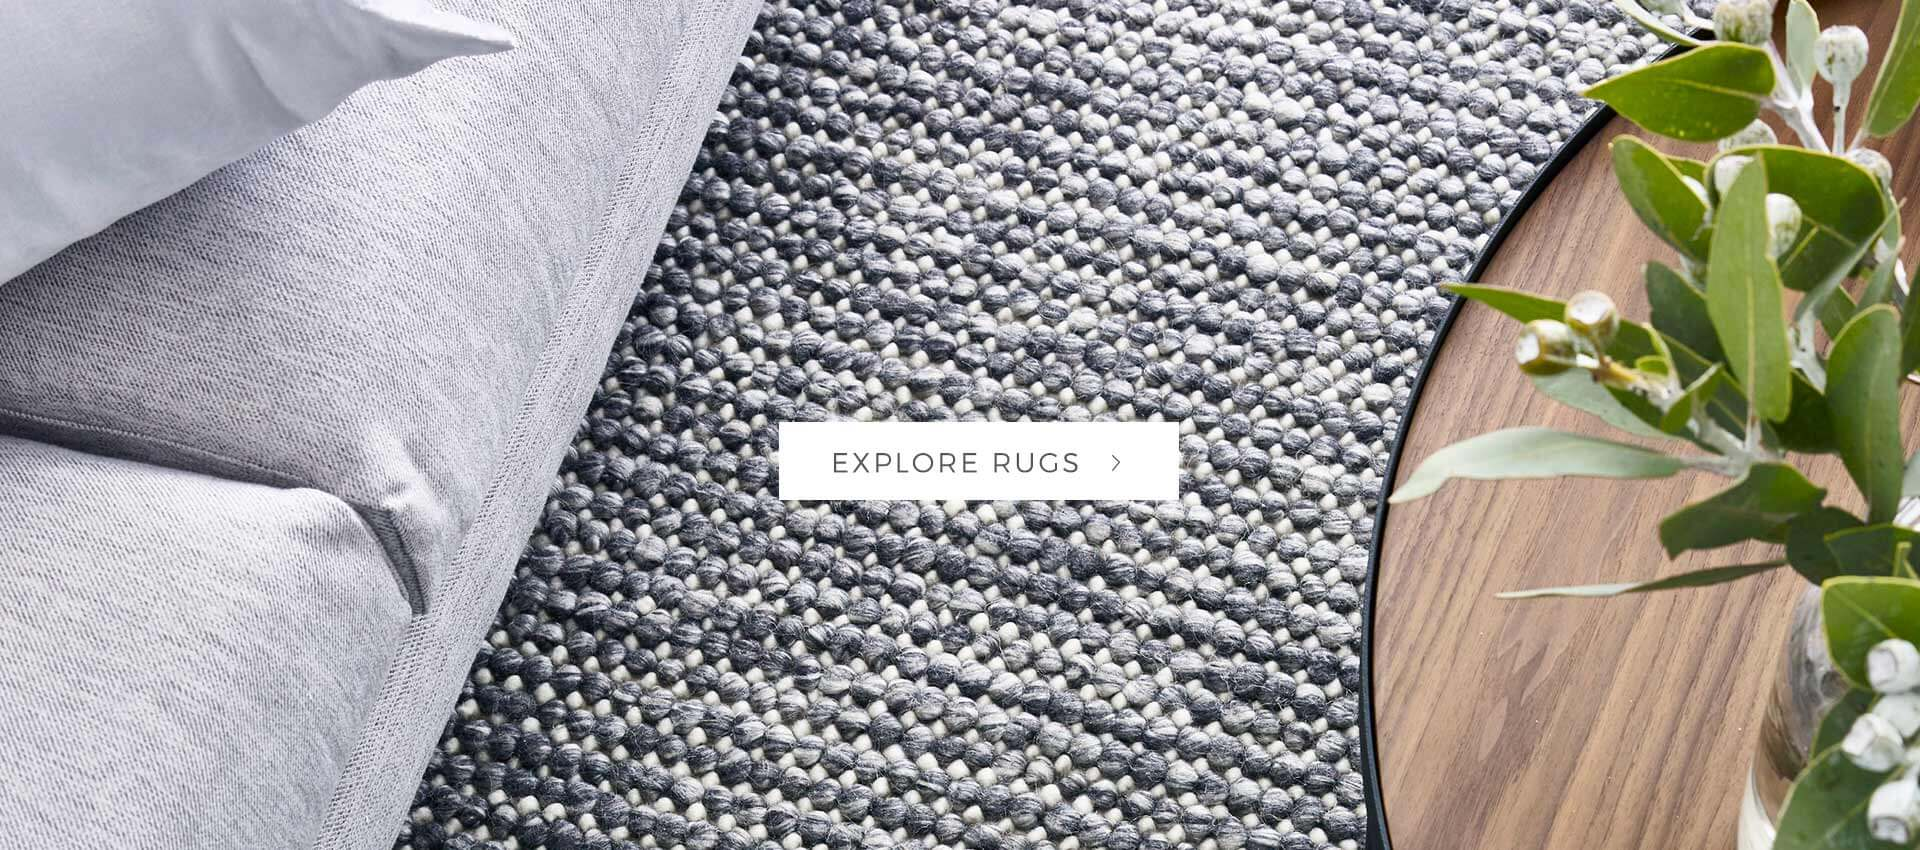 view all handmade rugs from textured, flatweaves and luxury handknots